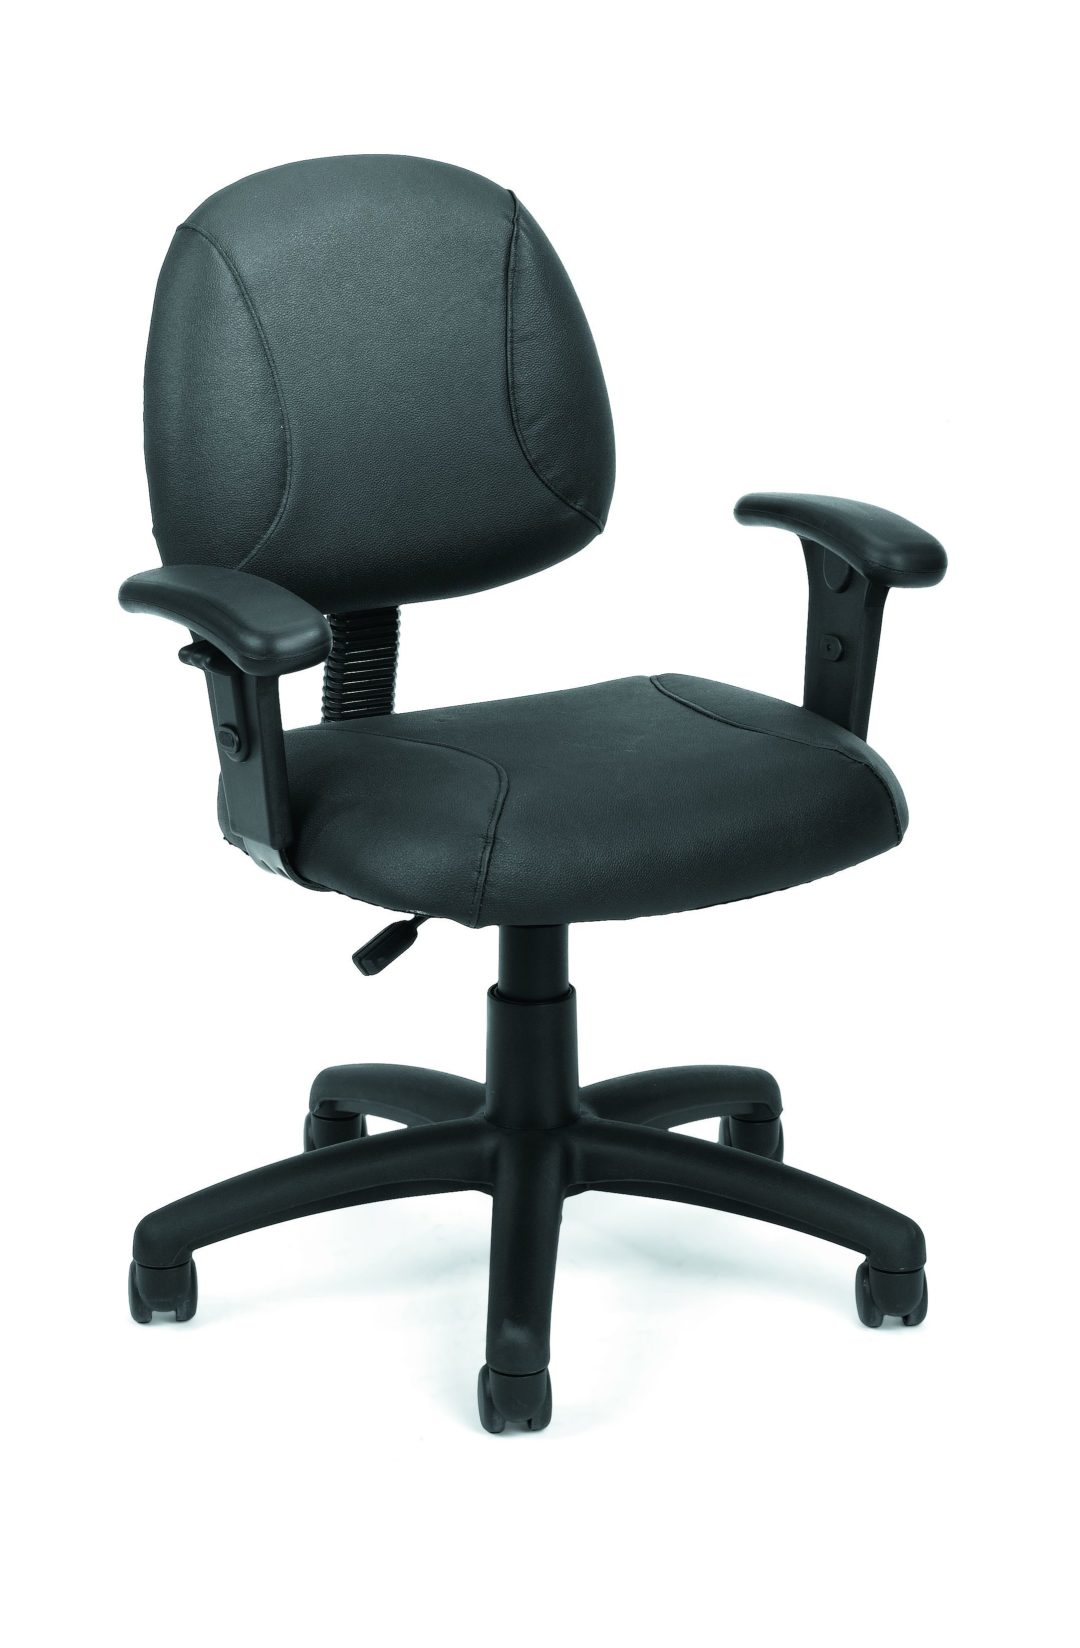 neutral posture chair review back support for office walmart b306 veeco salon furniture 43 design